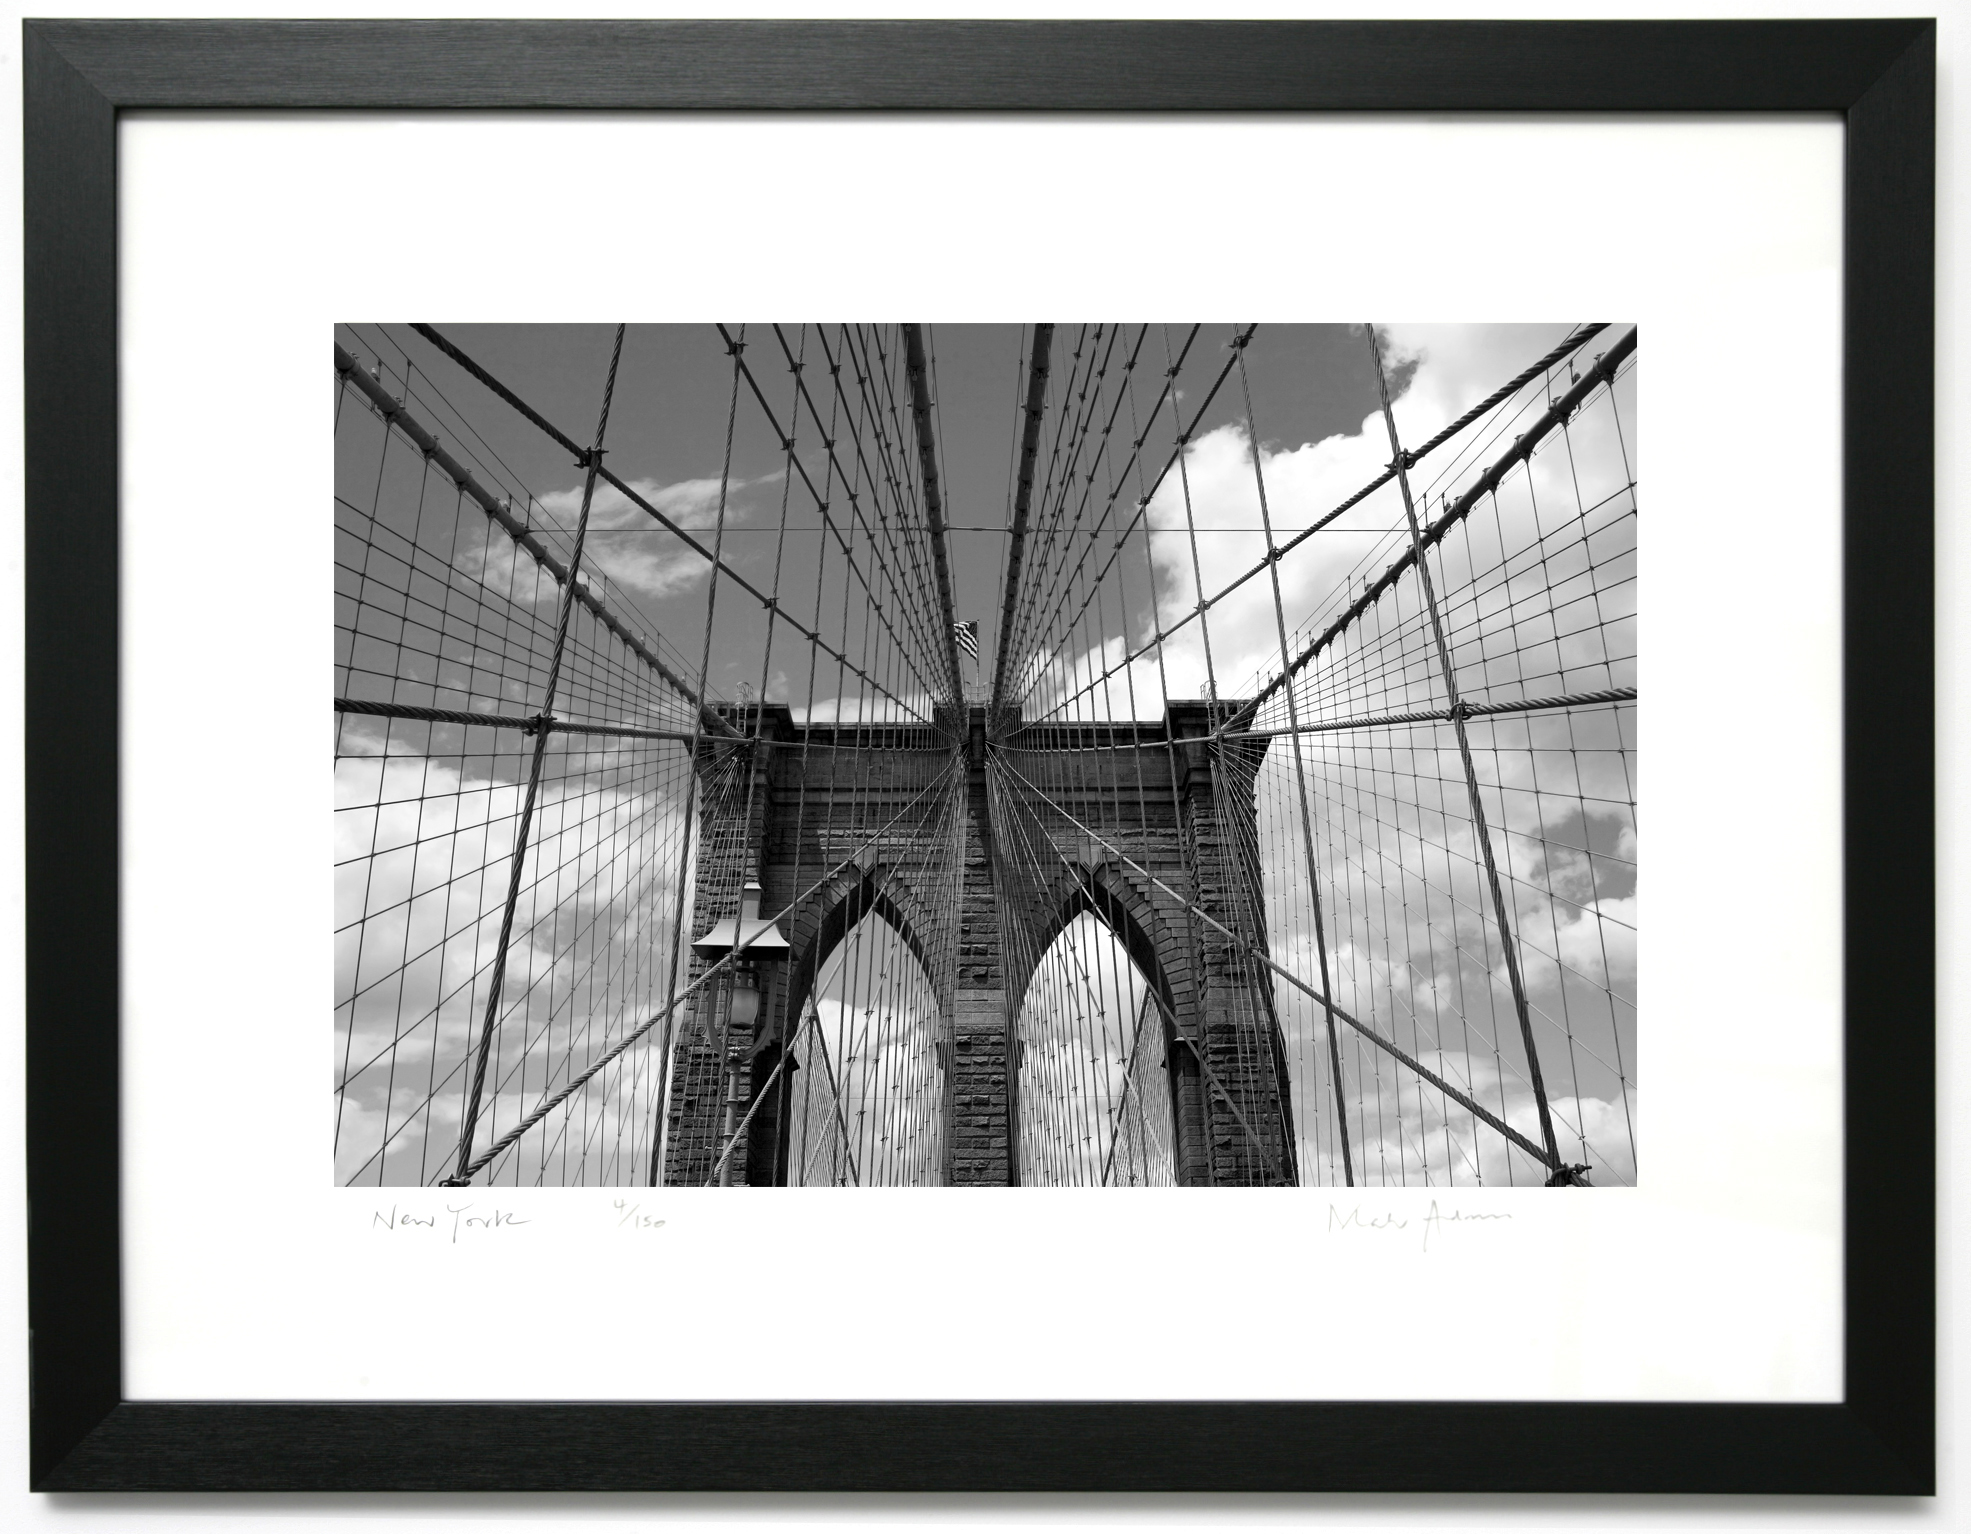 Framed Print Of New York Brooklyn Bridge Bridge 4 New York Framed Prints Of London Paris New York For Offices Homes And Gifts